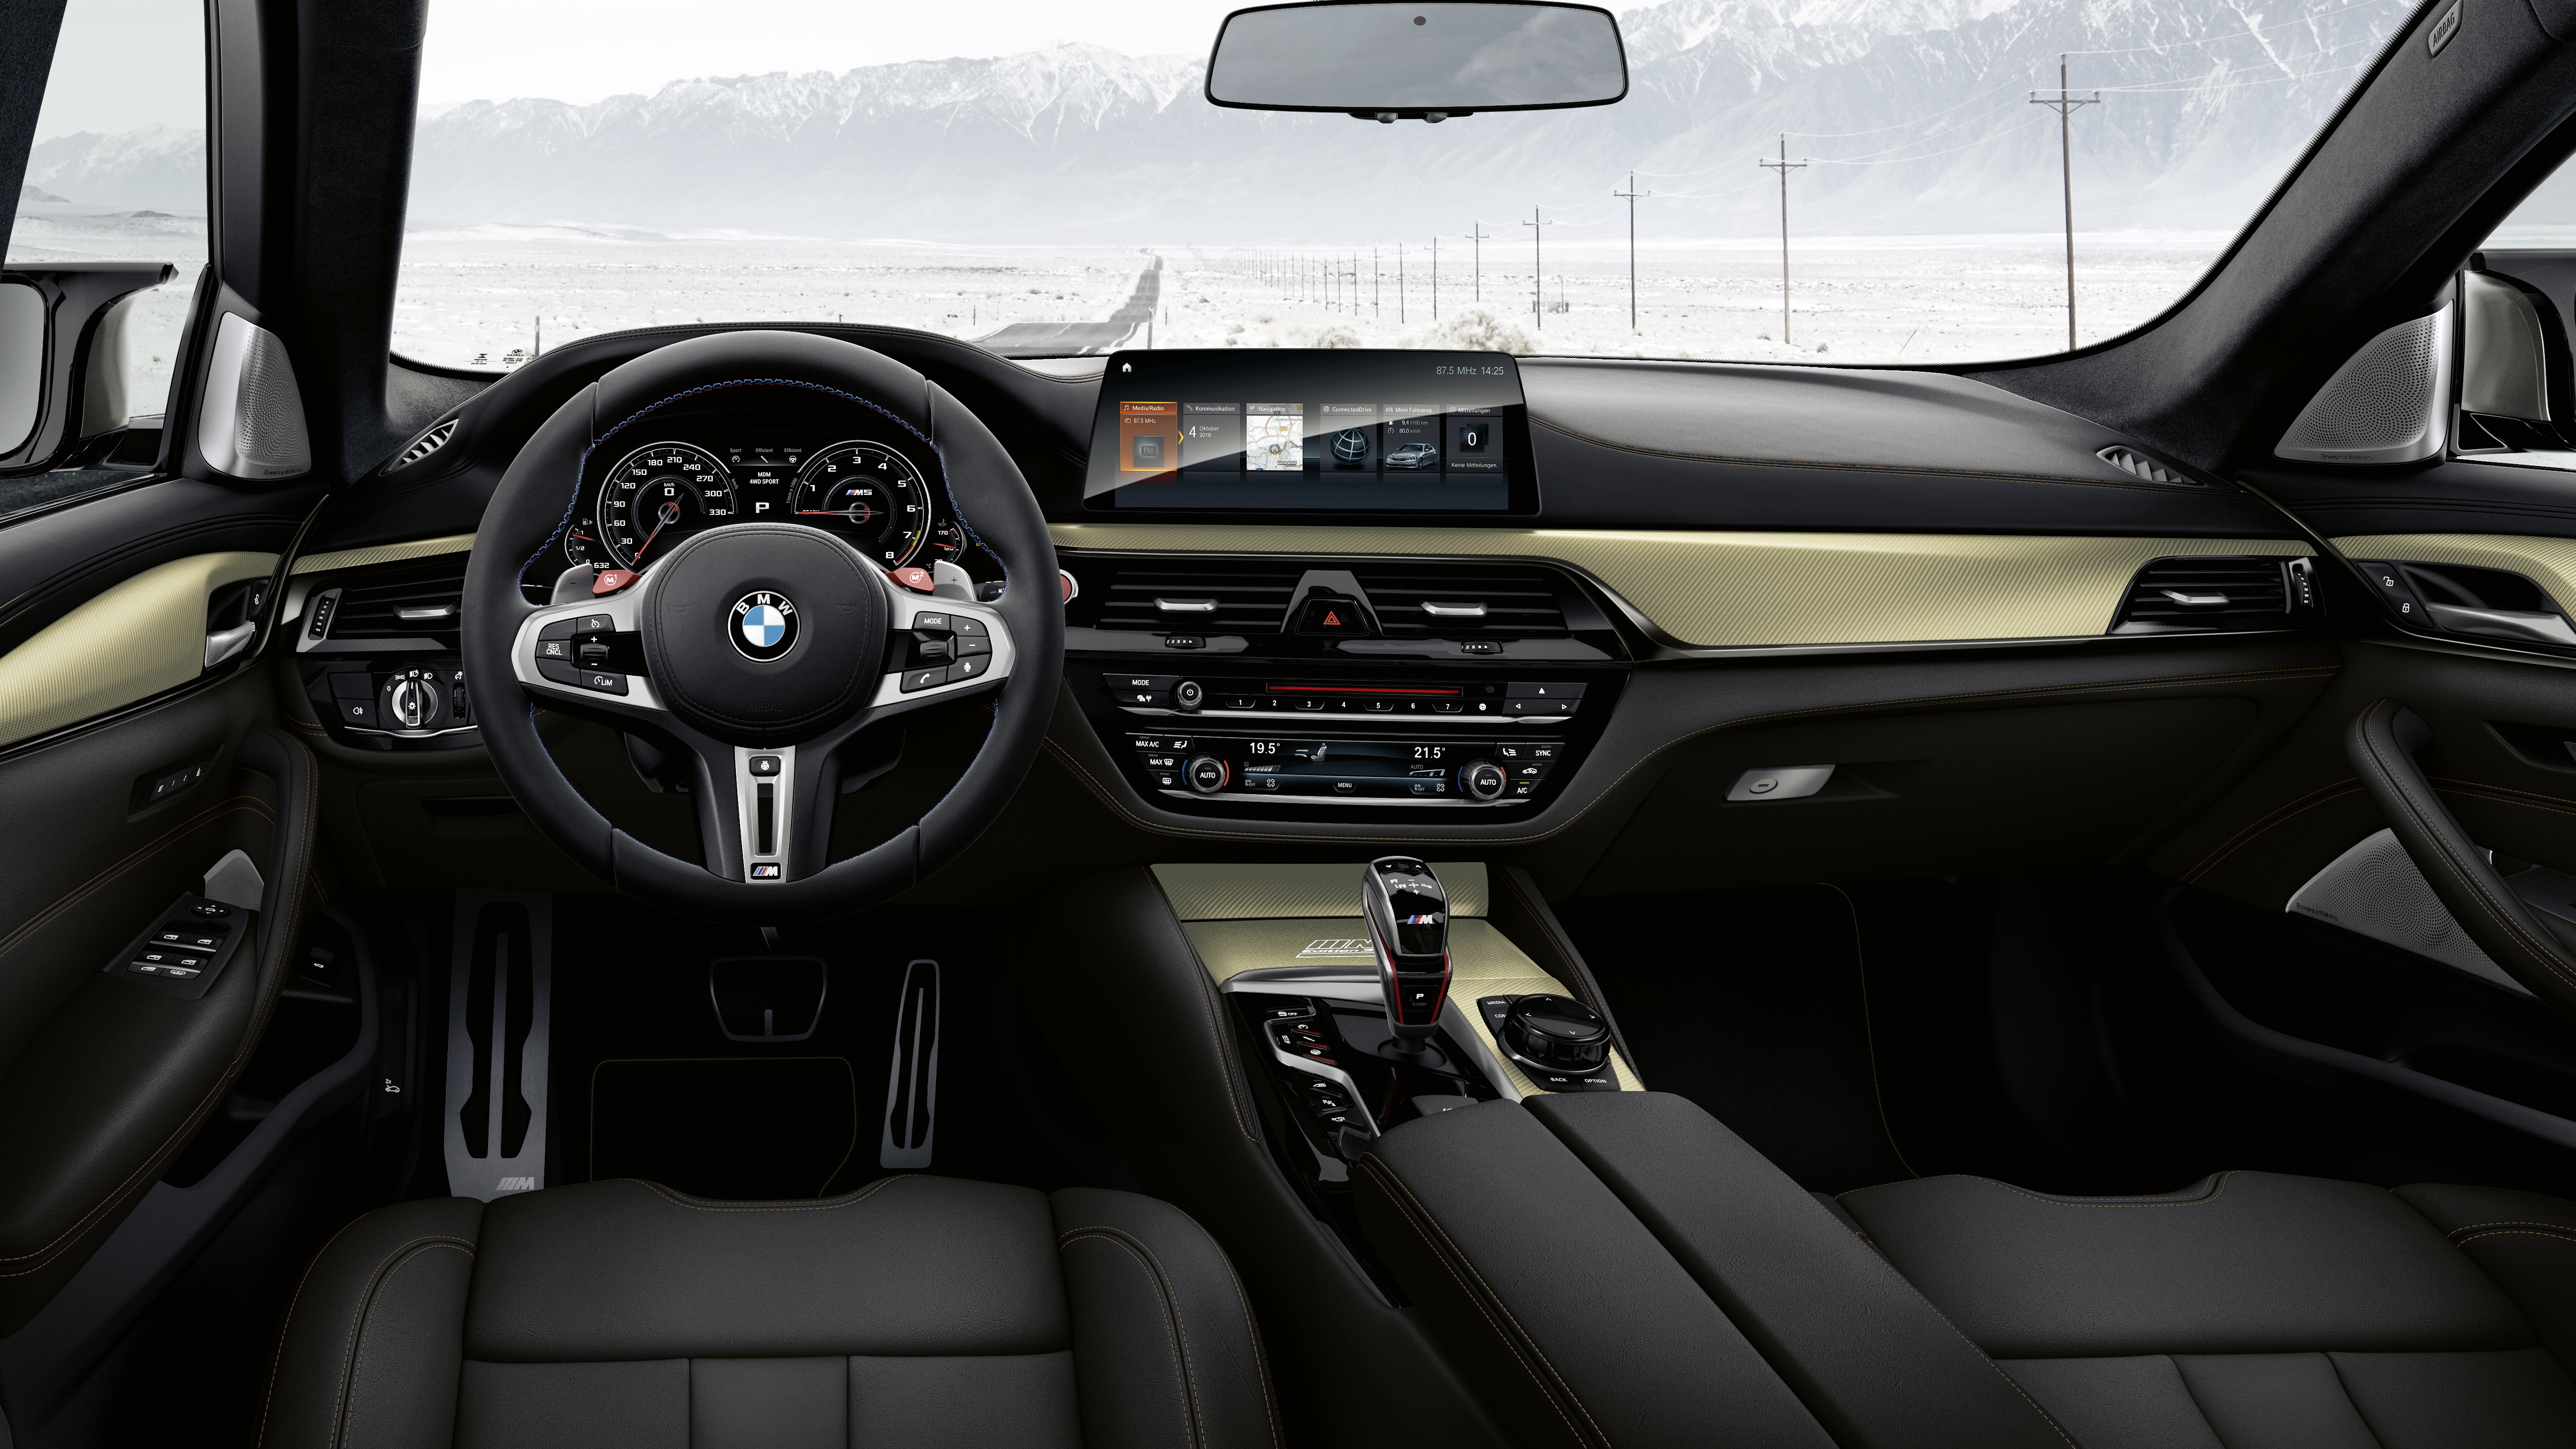 Bmw M5 Competition Edition 35 Jahre 2019 Interior Wallpaper Hd Car